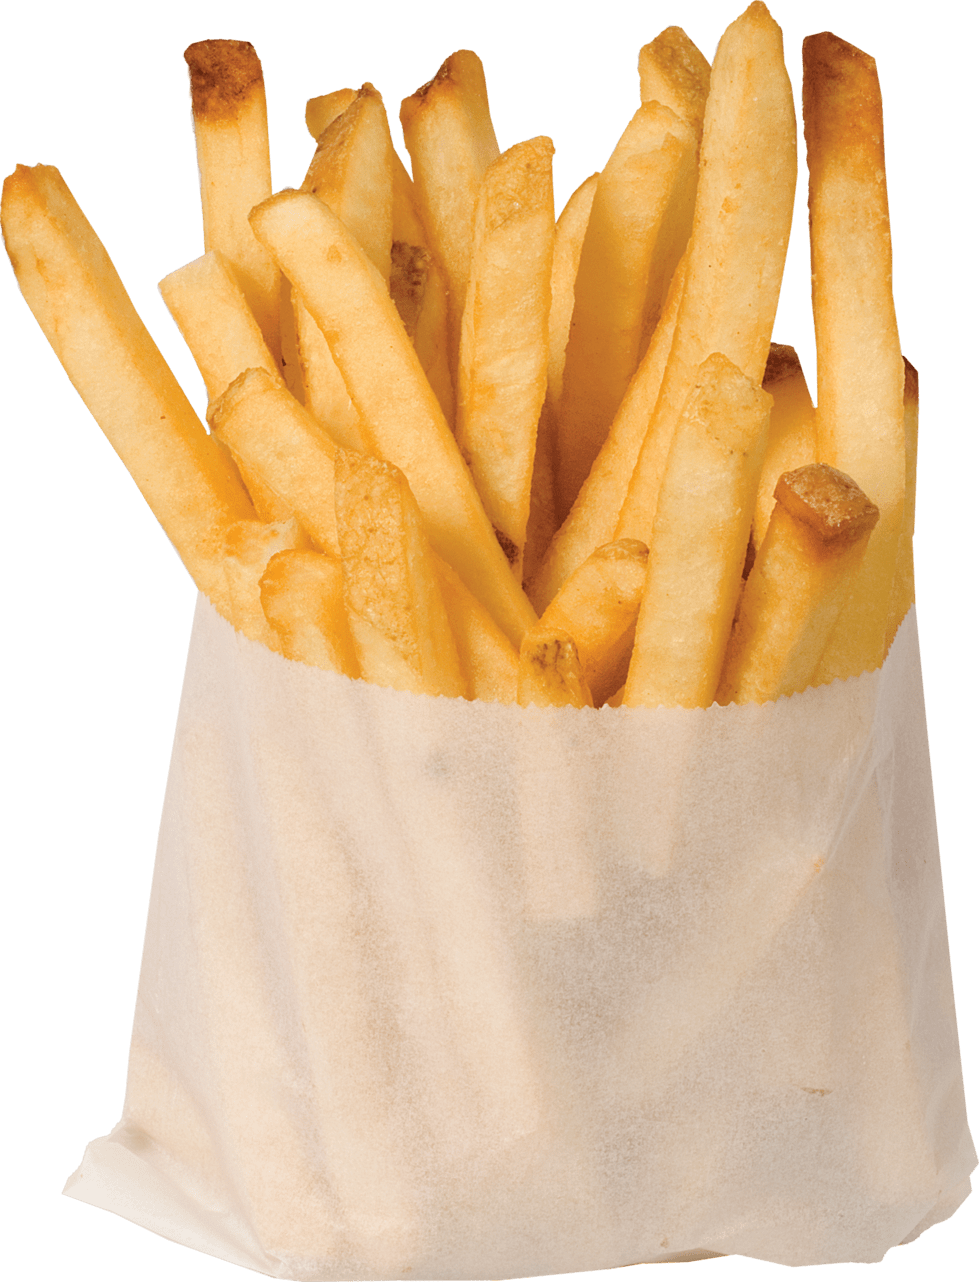 Download · food · french fries - French Fries PNG HD